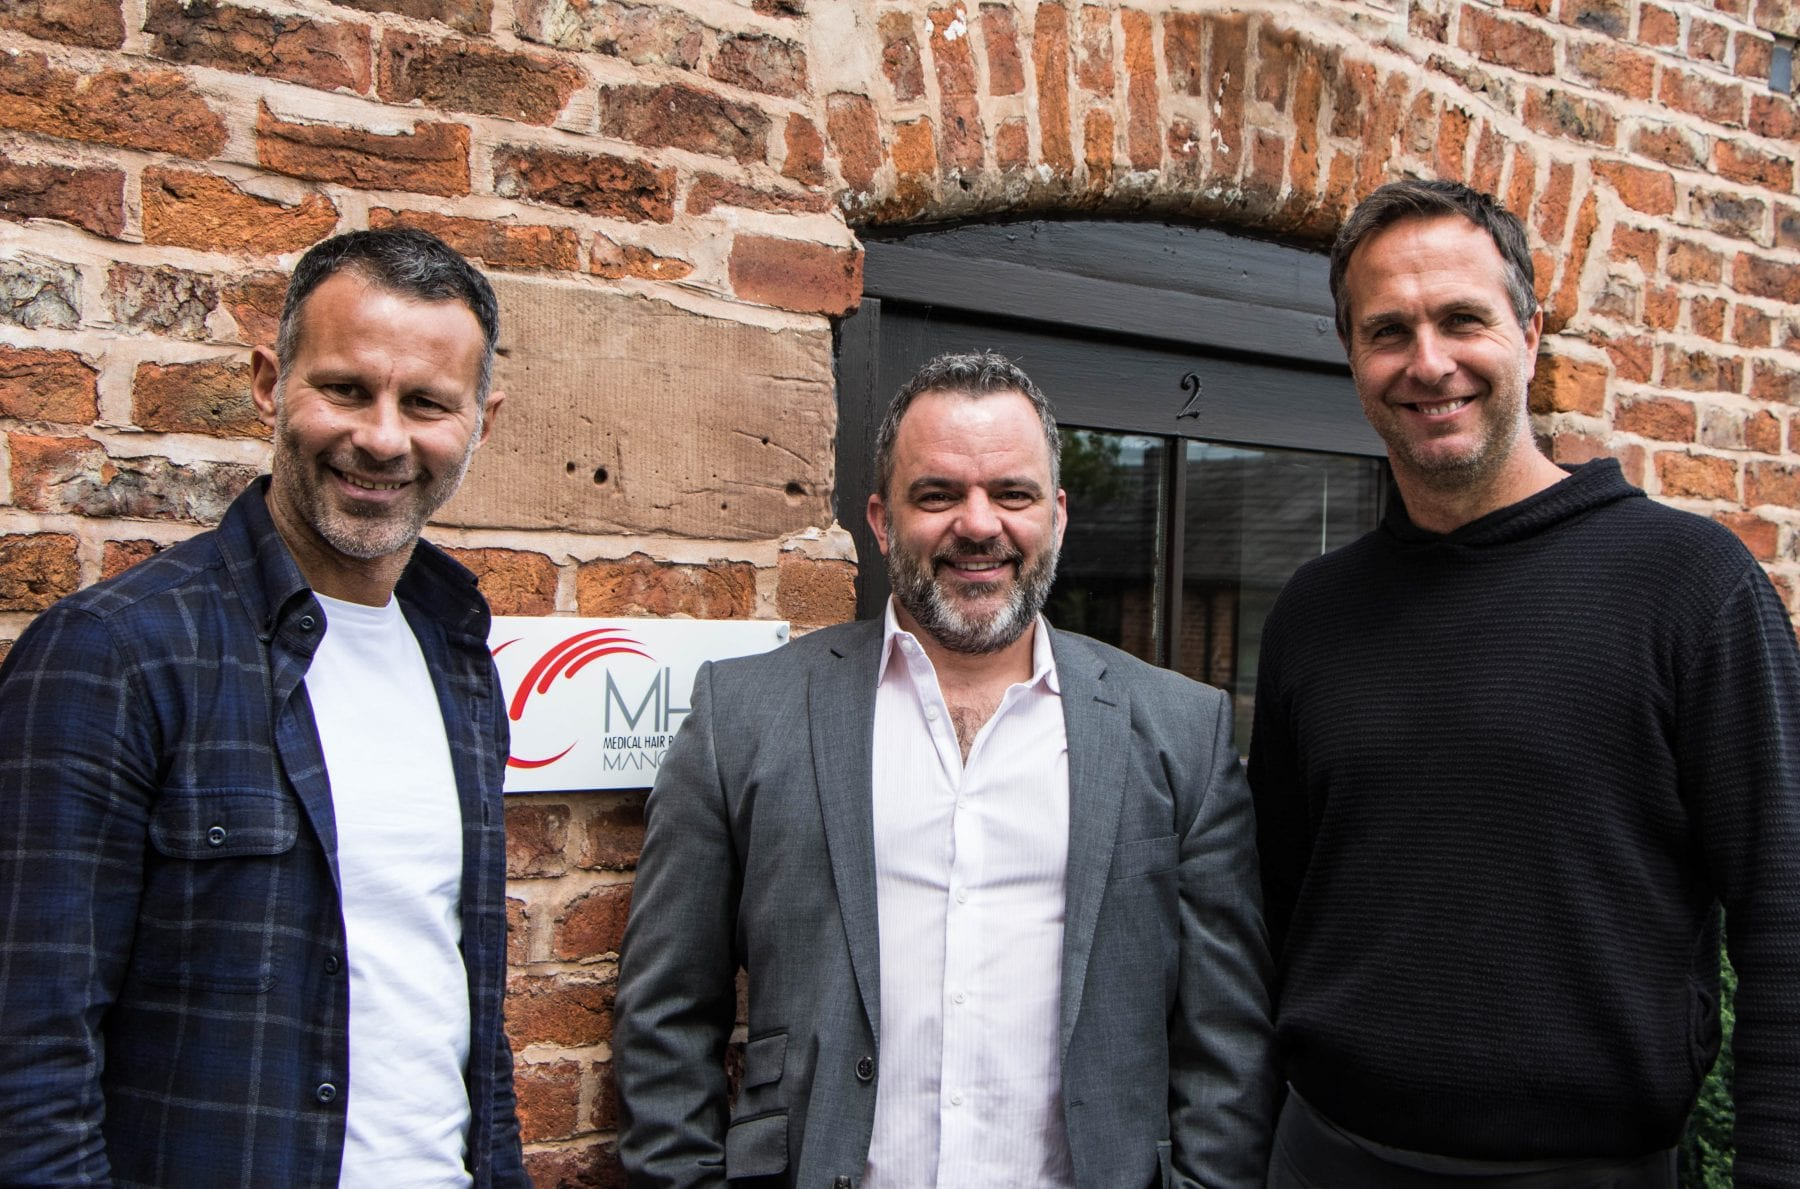 Ryan Giggs, Craig Henton and Michael Vaughan stood outside the hair transplant clinic in Manchester.